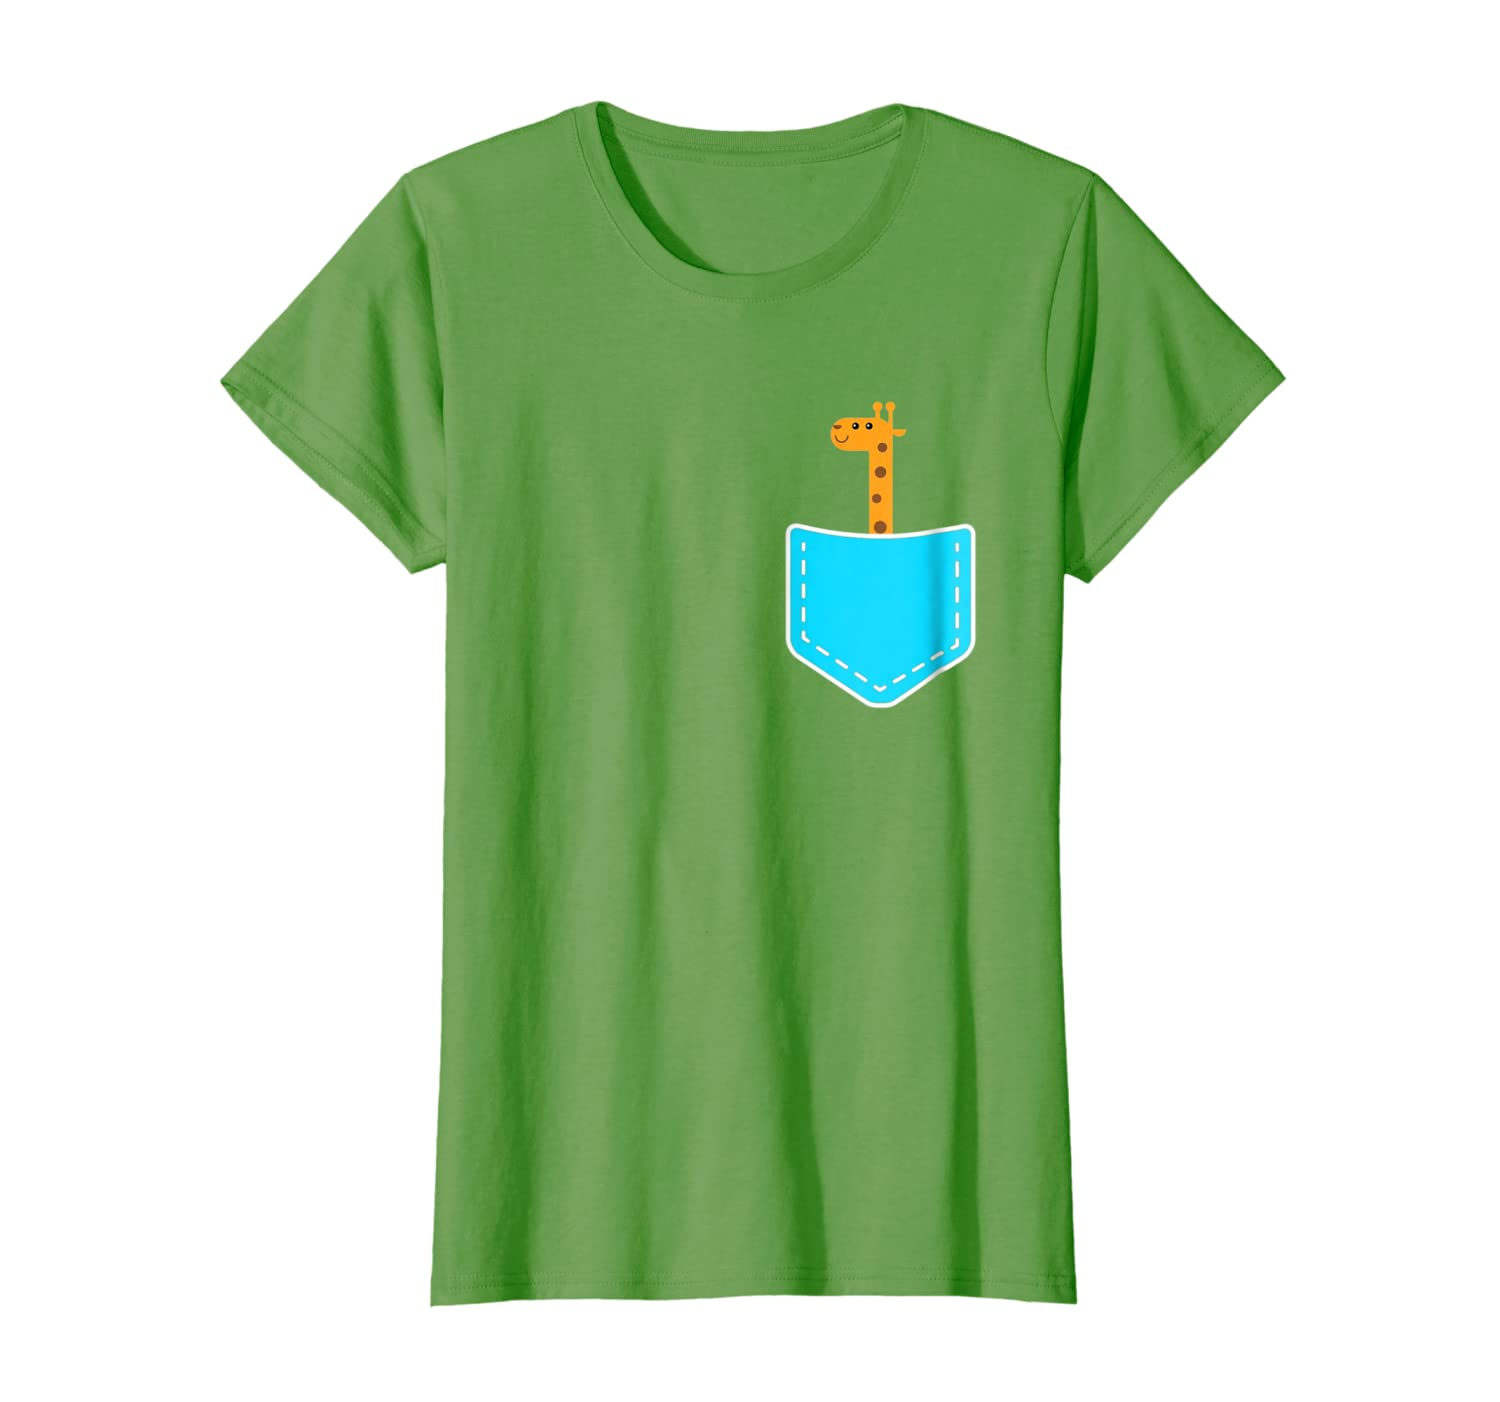 Cute Giraffe In Your Pocket Funny T-shirt